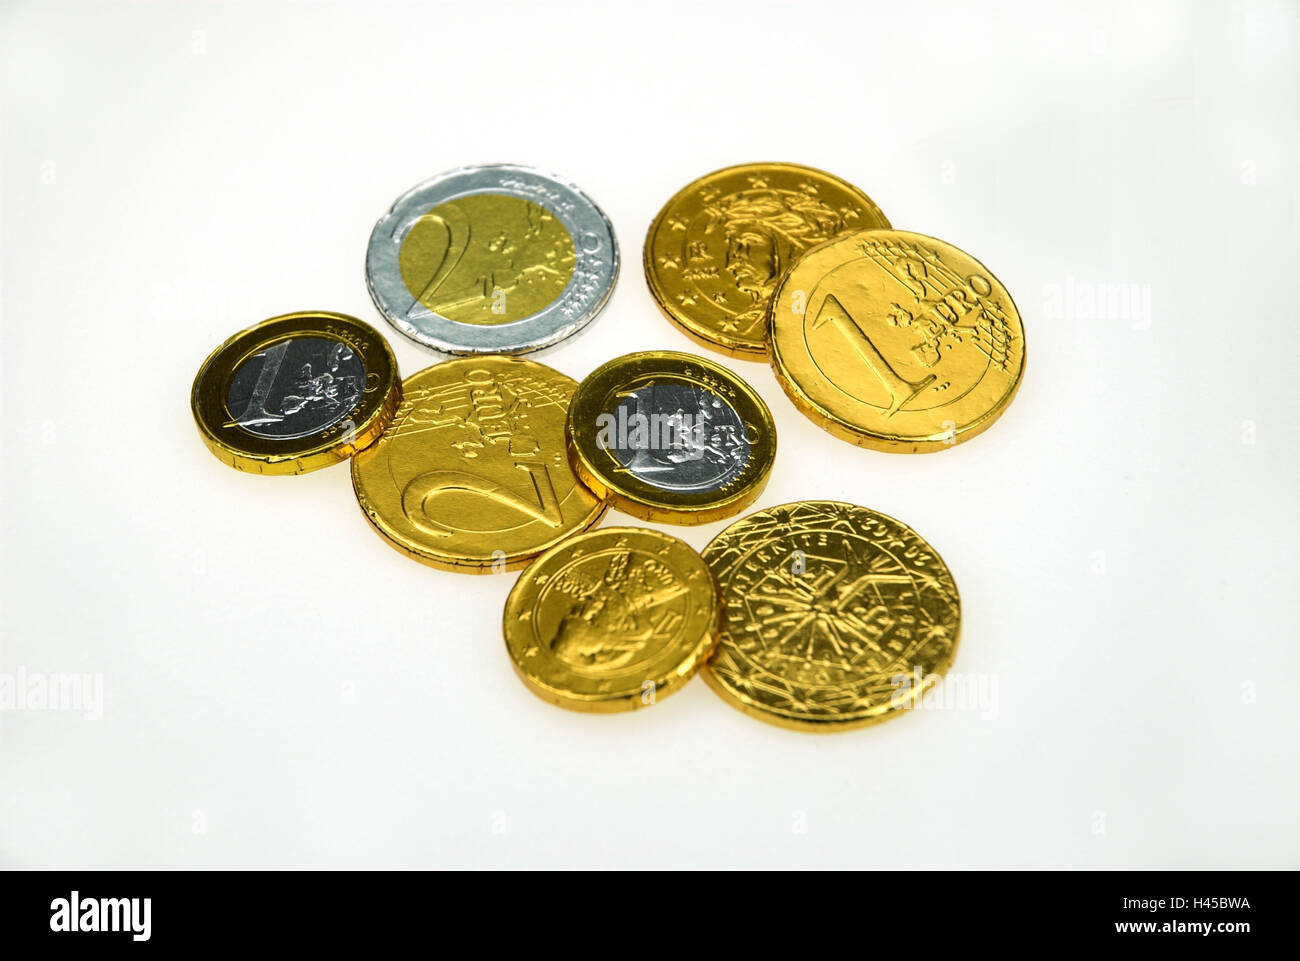 Chocolate thaler, euro coins, - Stock Image